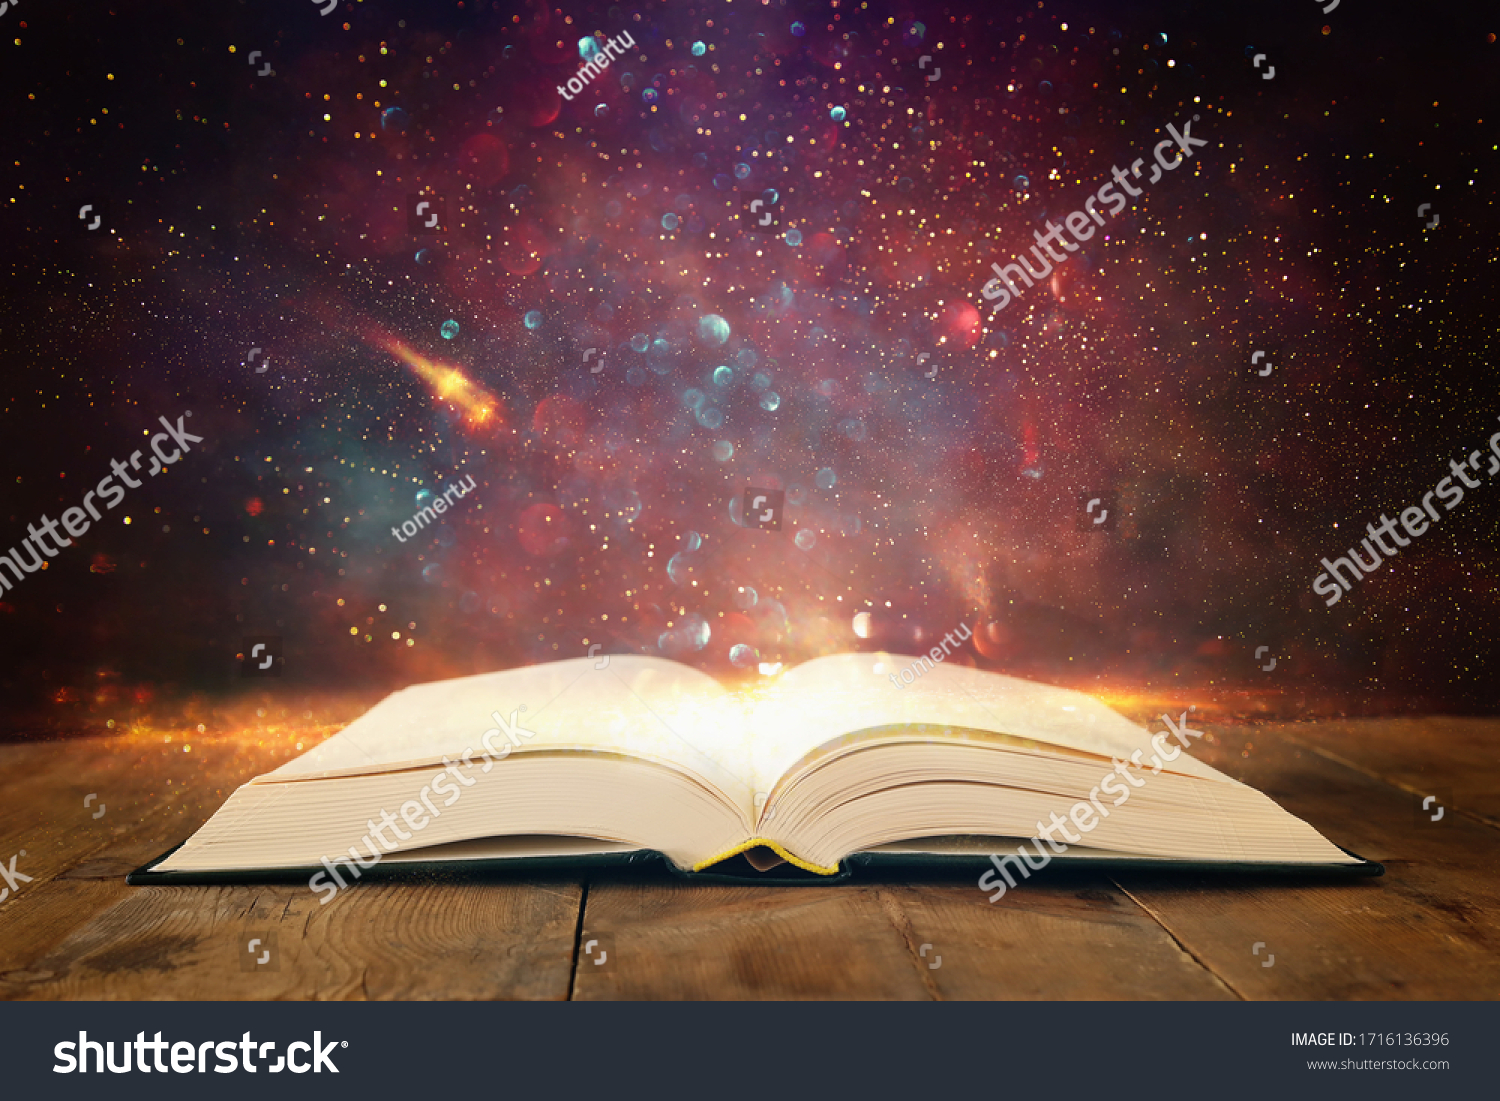 image of open antique book on wooden table with glitter overlay #1716136396